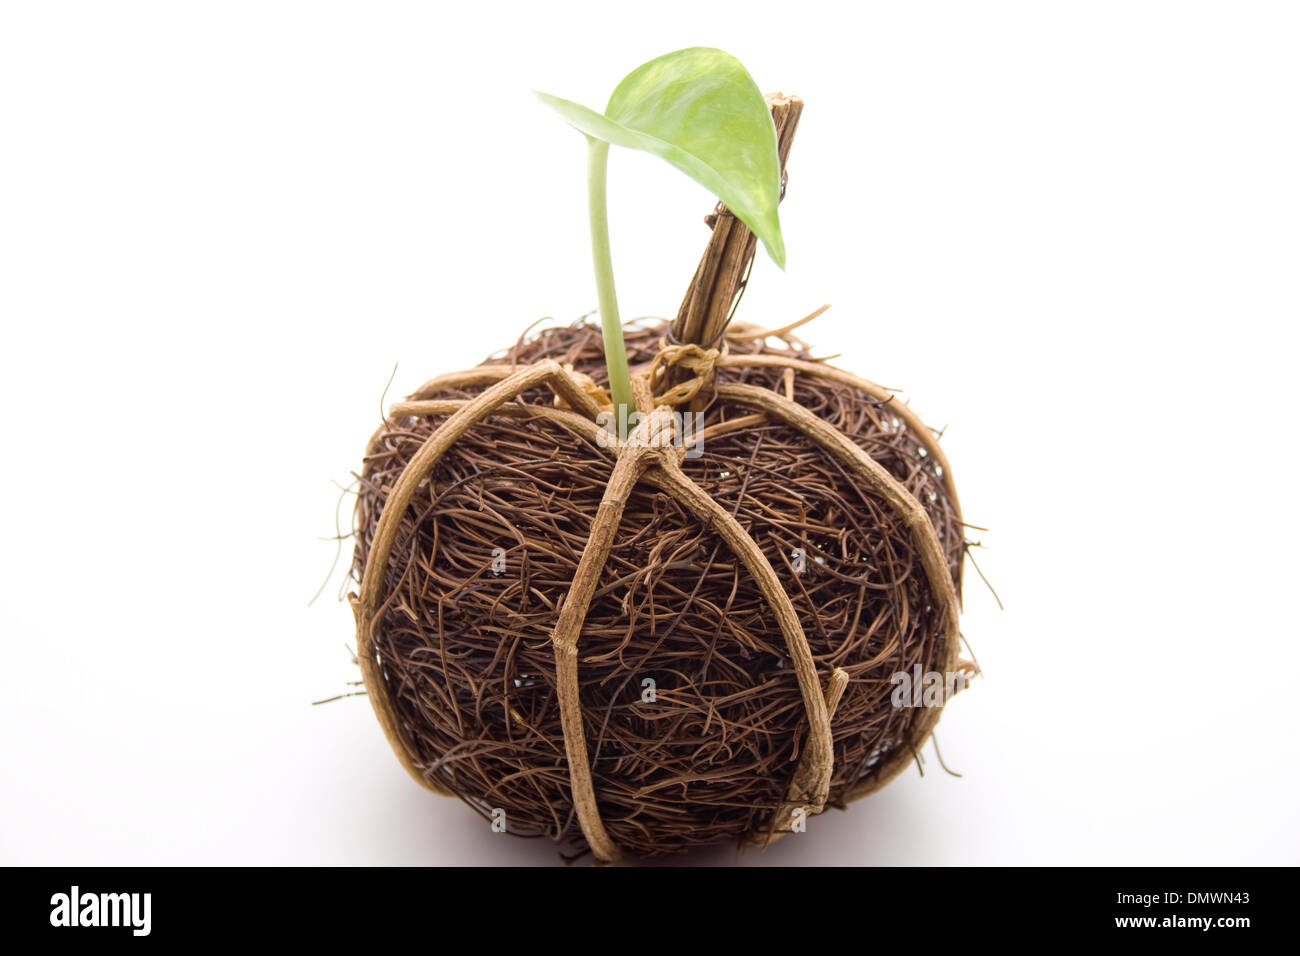 Straw ball with plant sheet - Stock Image